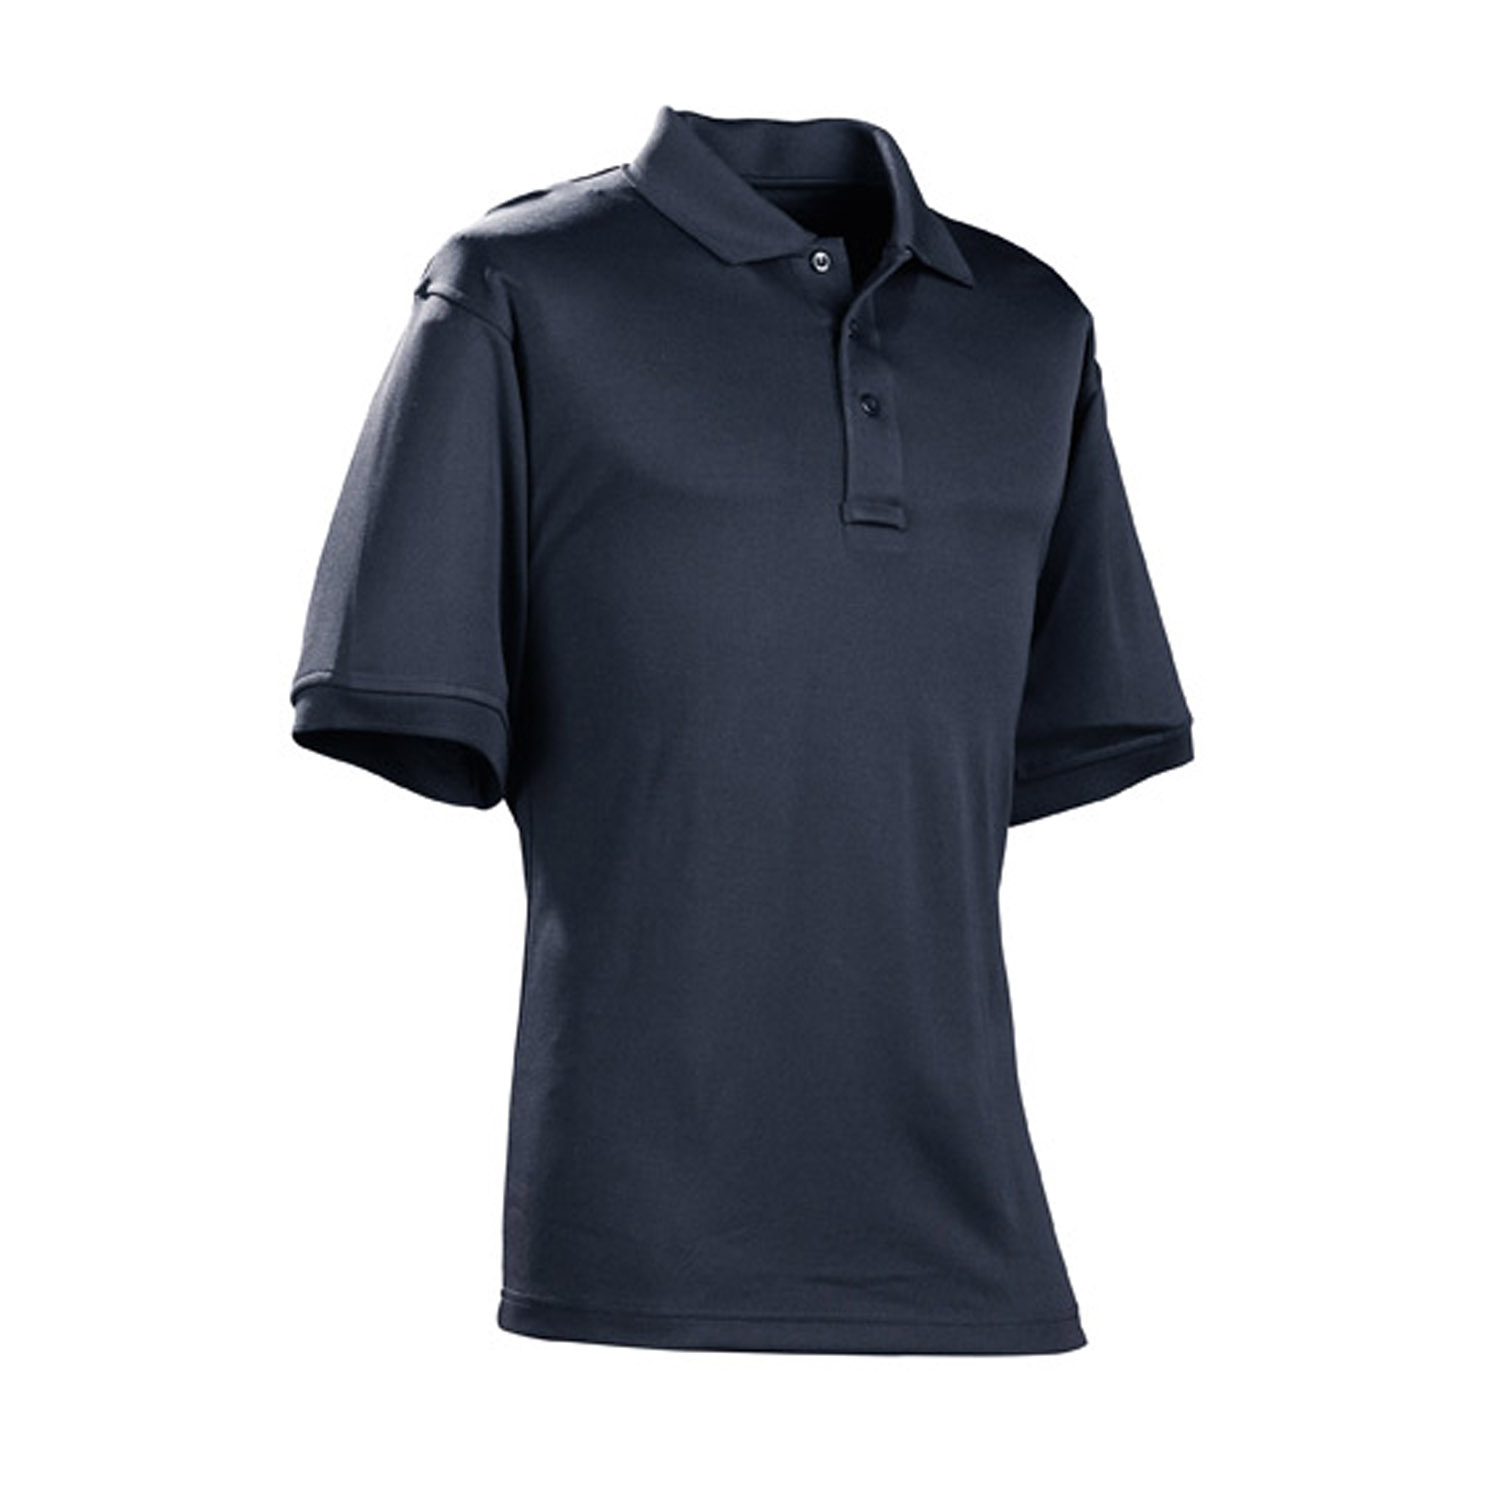 Elbeco UFX Tactical Short Sleeve Polo